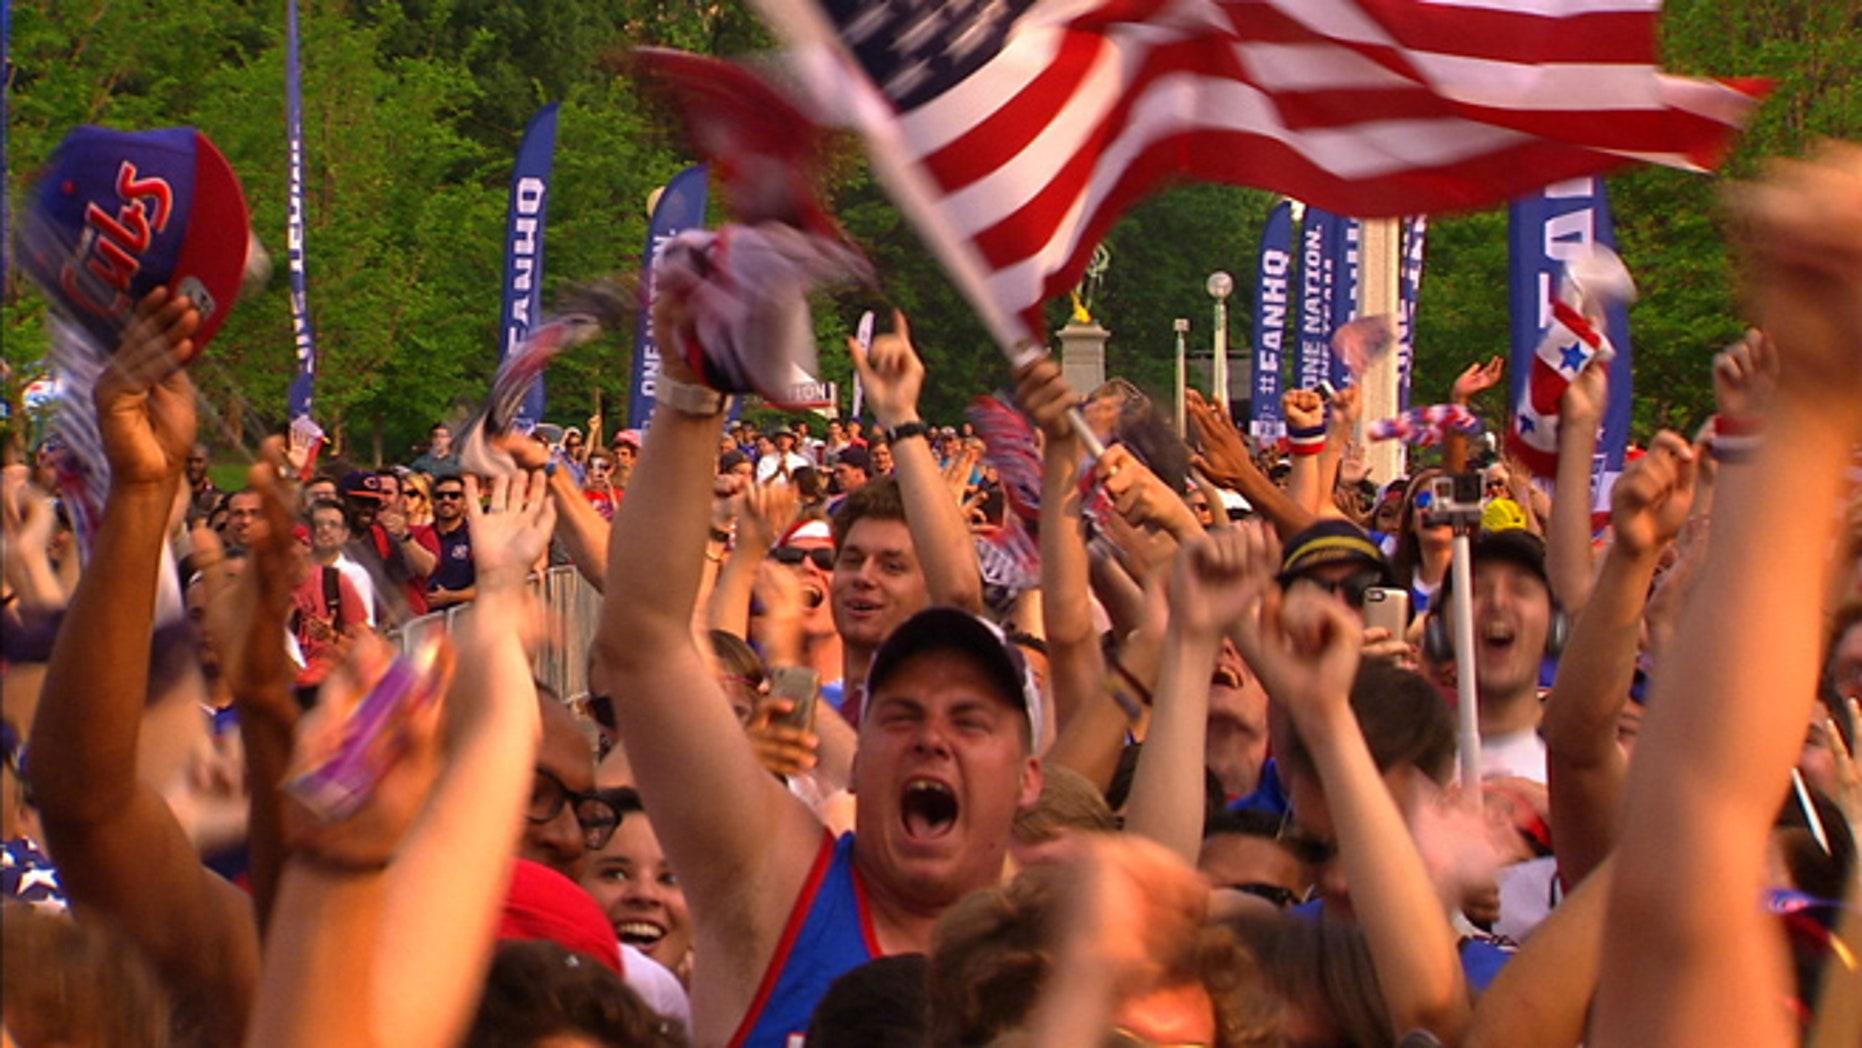 Fans in Chicago celebrate the U.S. Women's team victory in the FIFA Women's World Cup 2015.